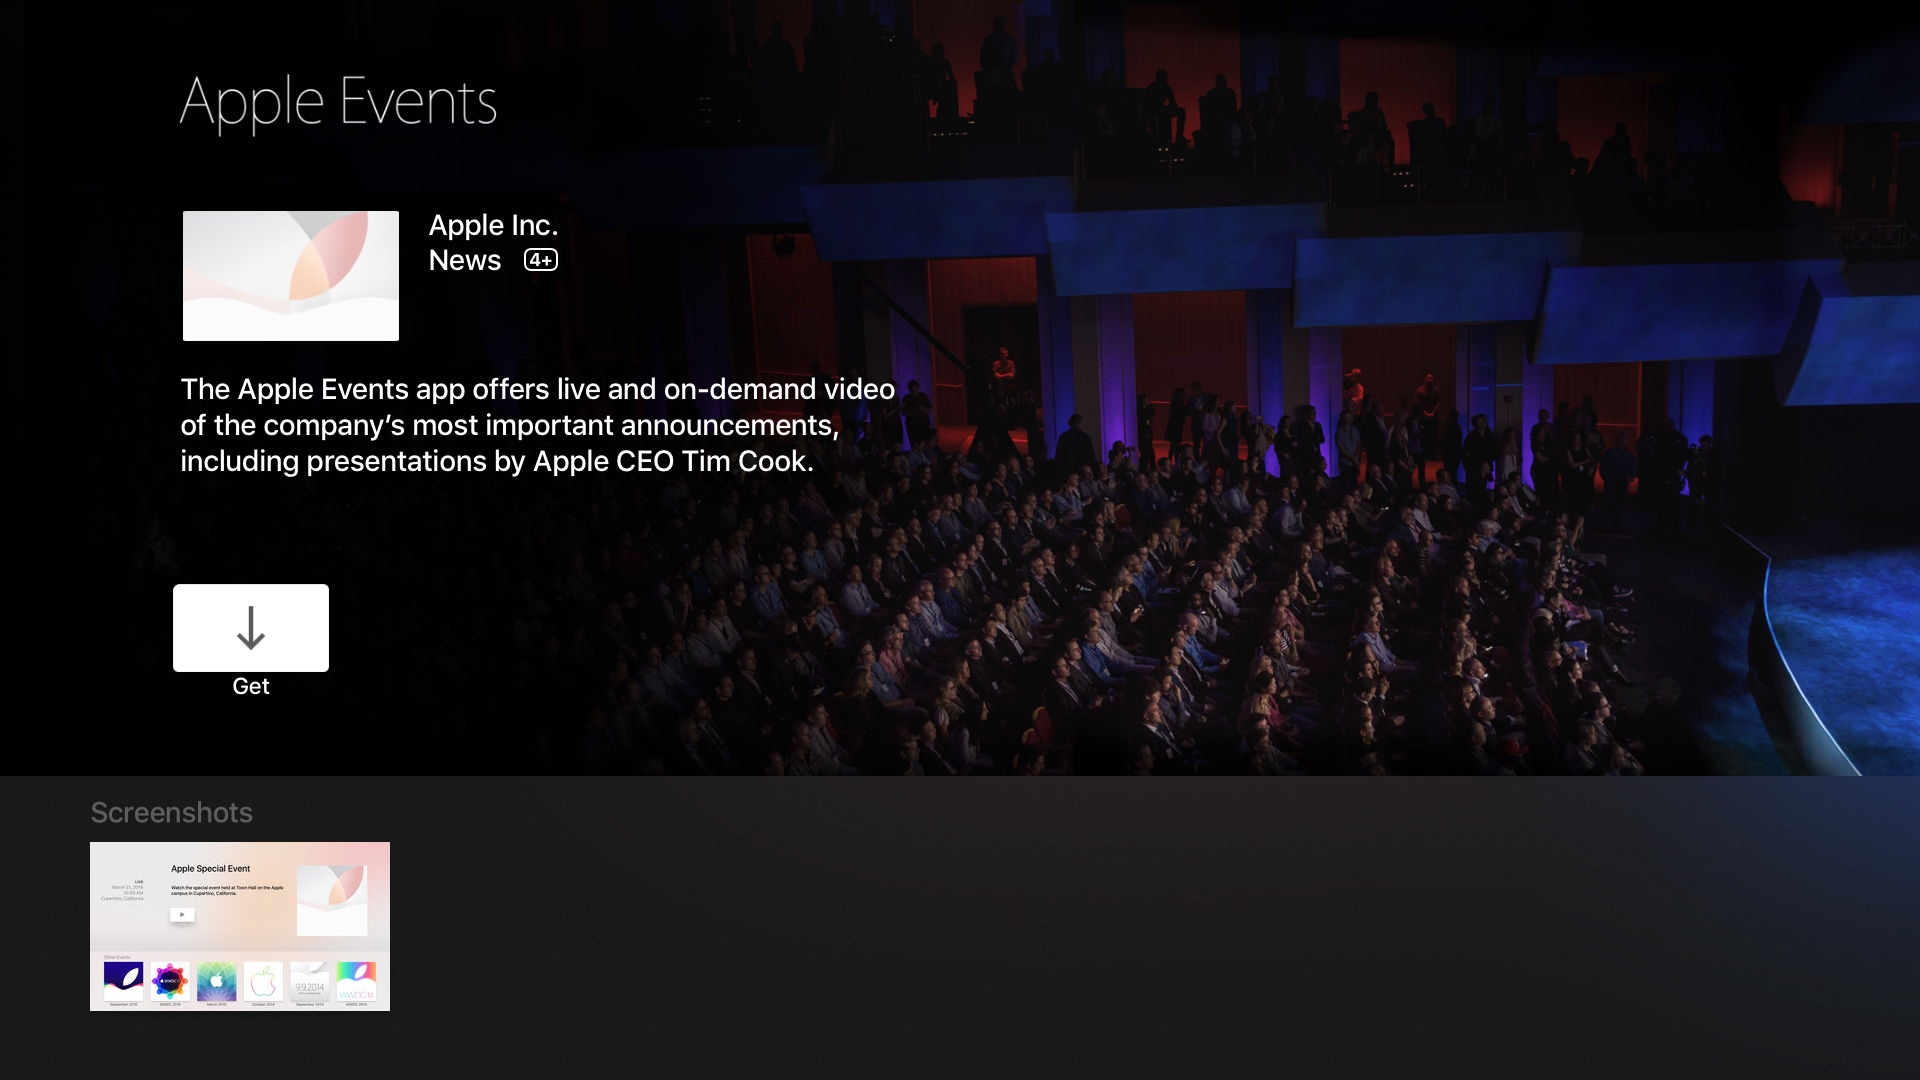 tvOS App Store Events app Apple TV screenshot 001